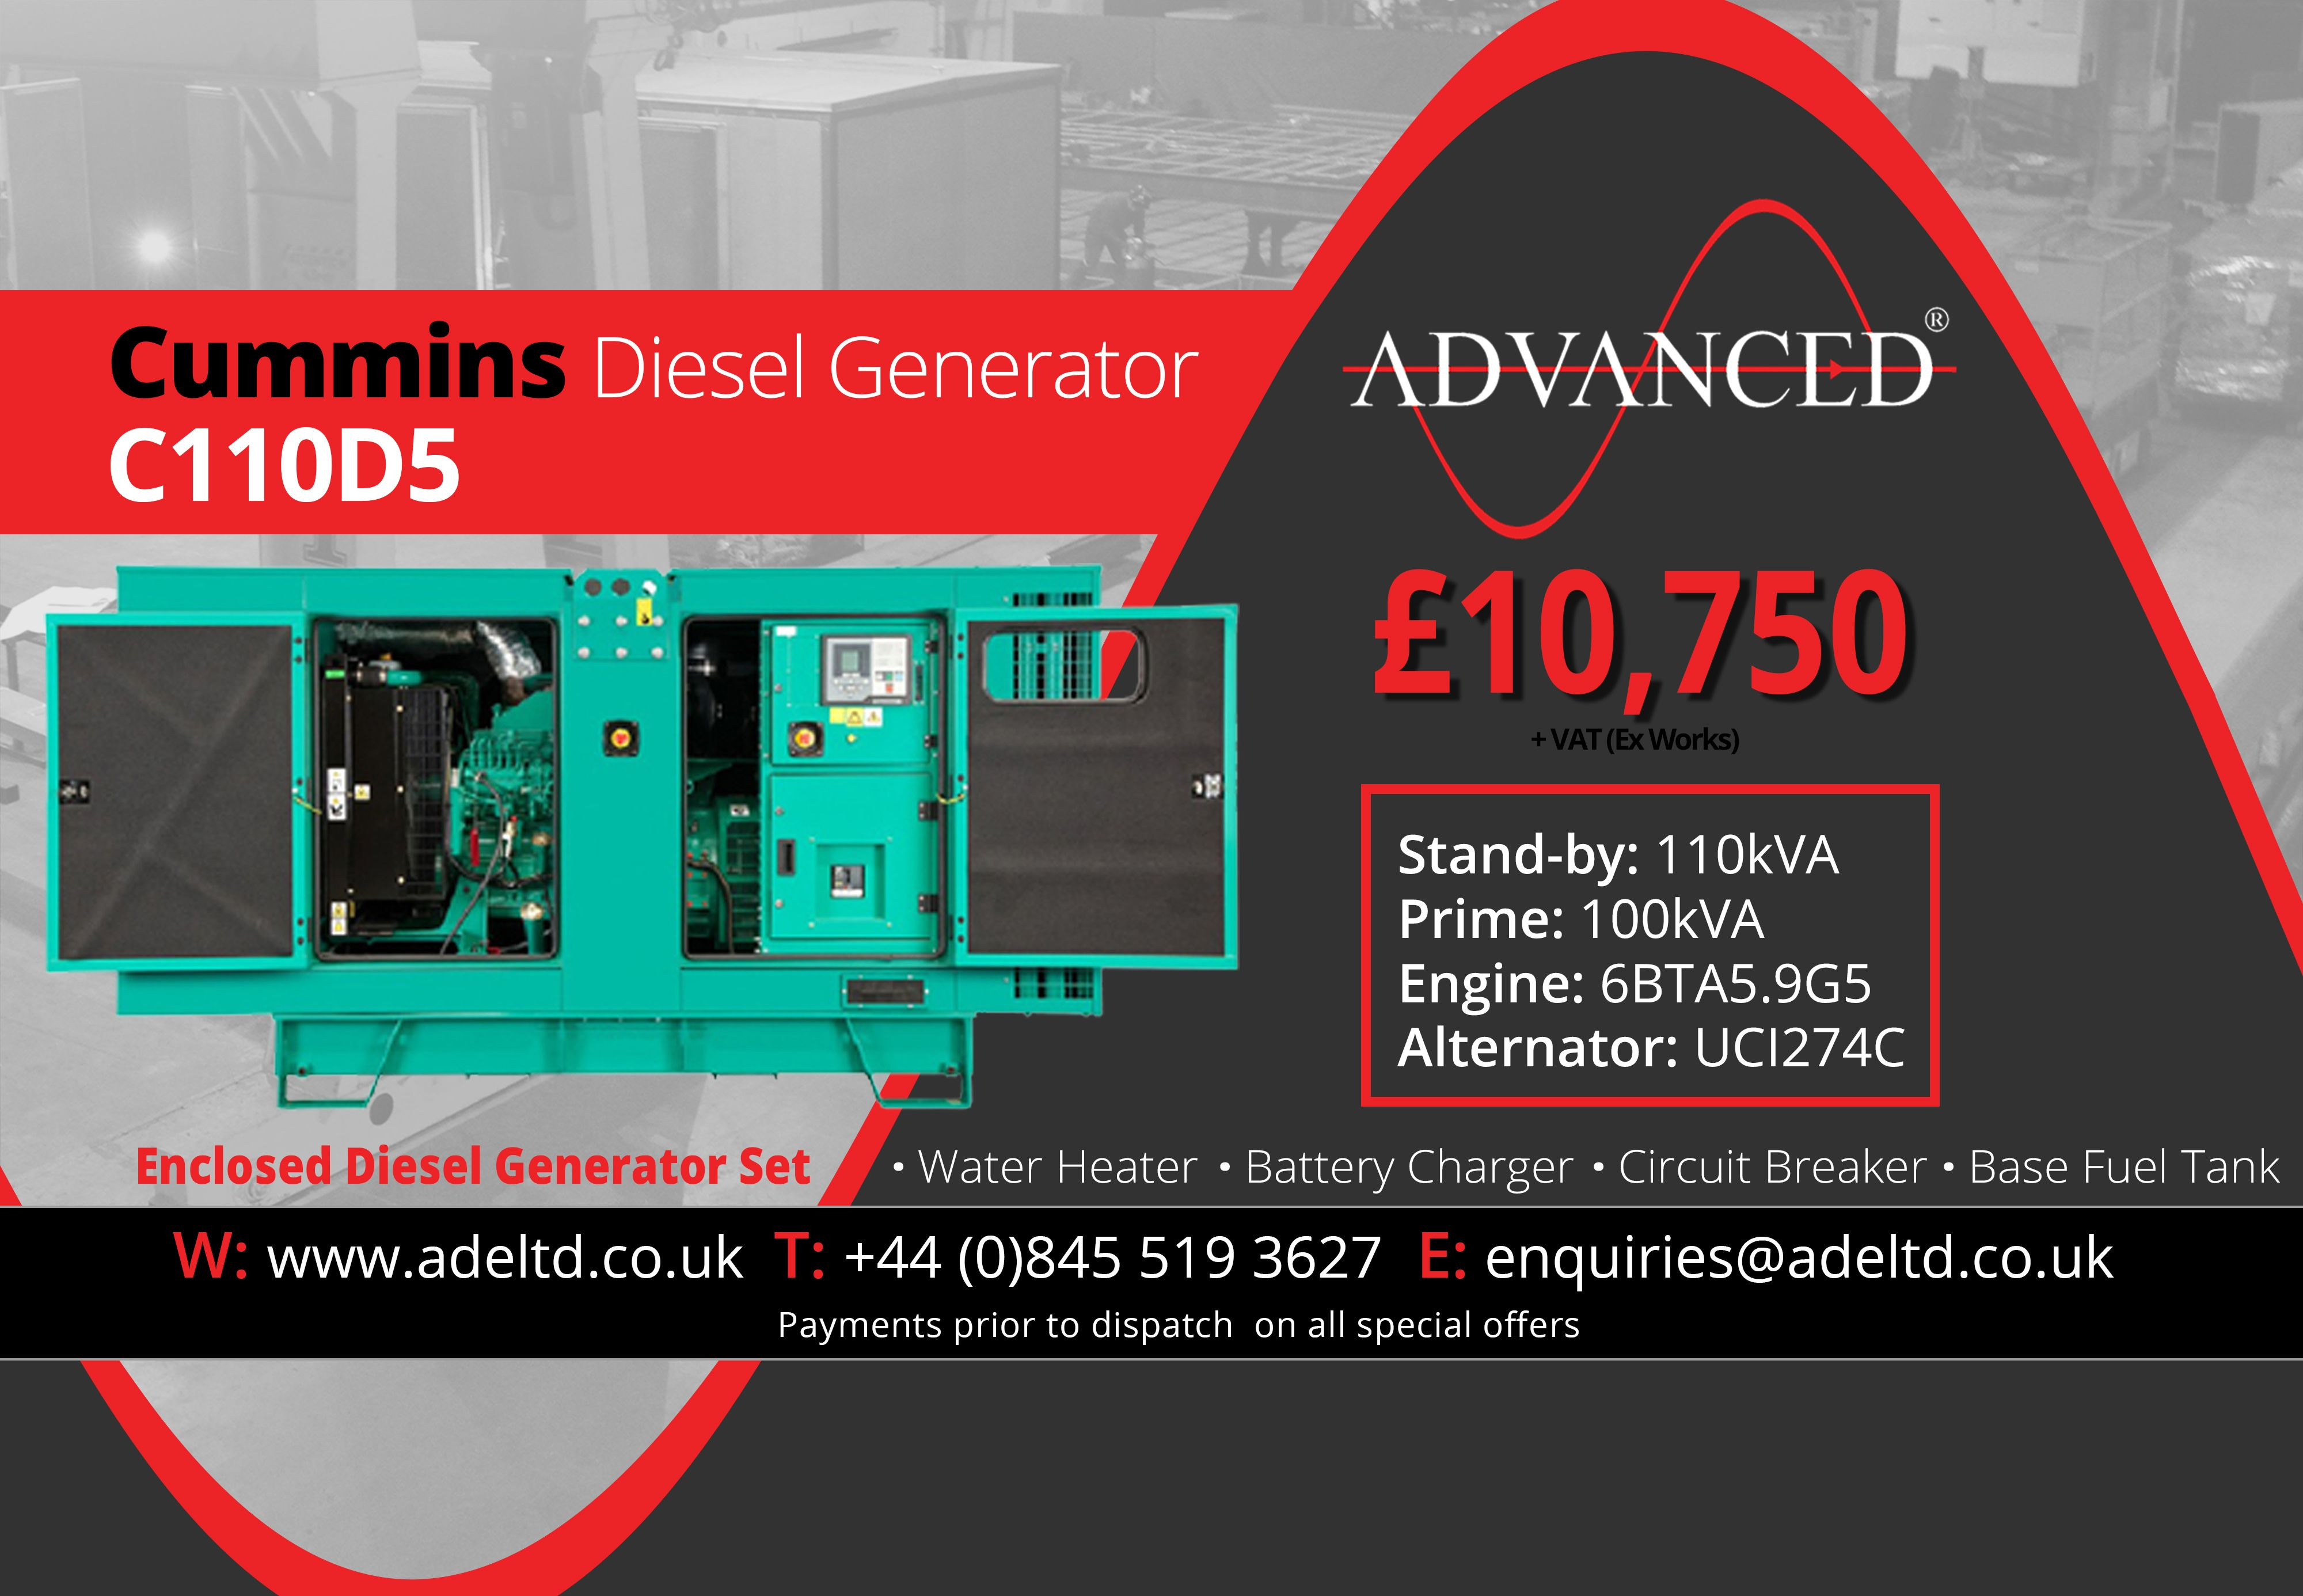 hight resolution of advanced are a leading uk supplier of diesel generators and complete power generation solutions as well as manufacturers of bespoke generator enclosures